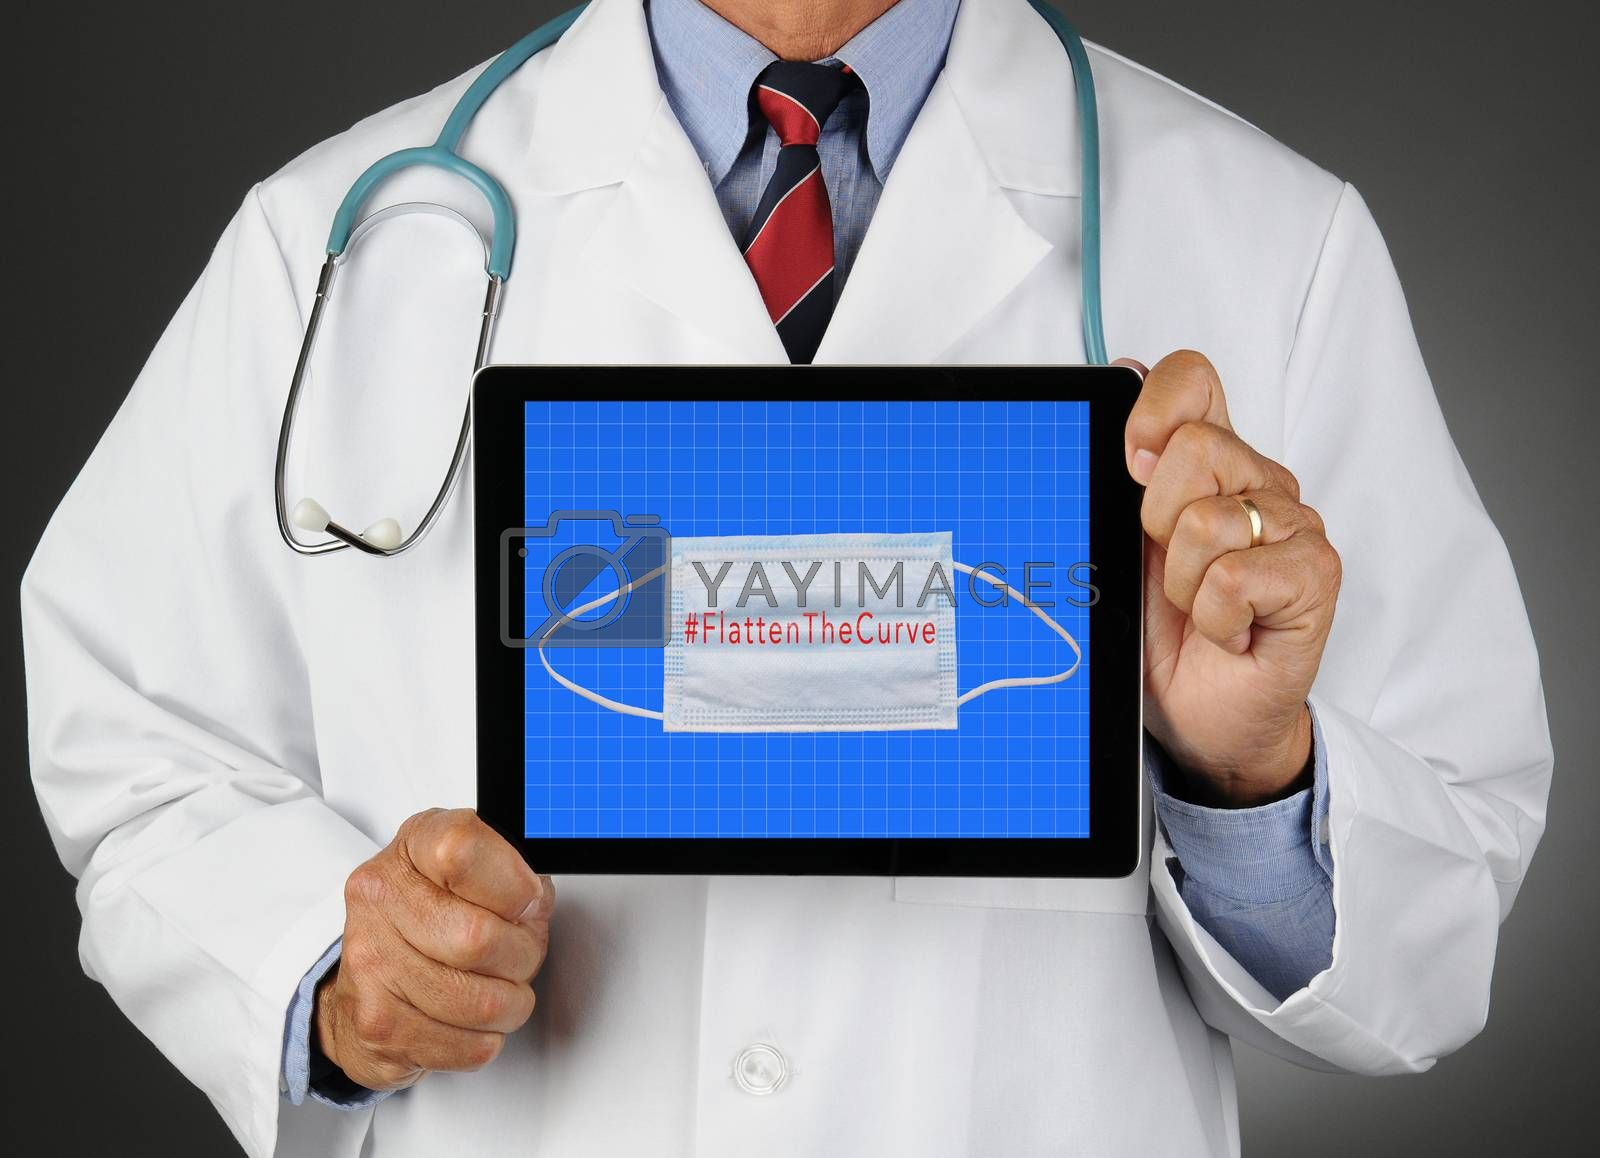 Closeup of a doctor holding a tablet computer with a Surgical mask and Flatten the Curve